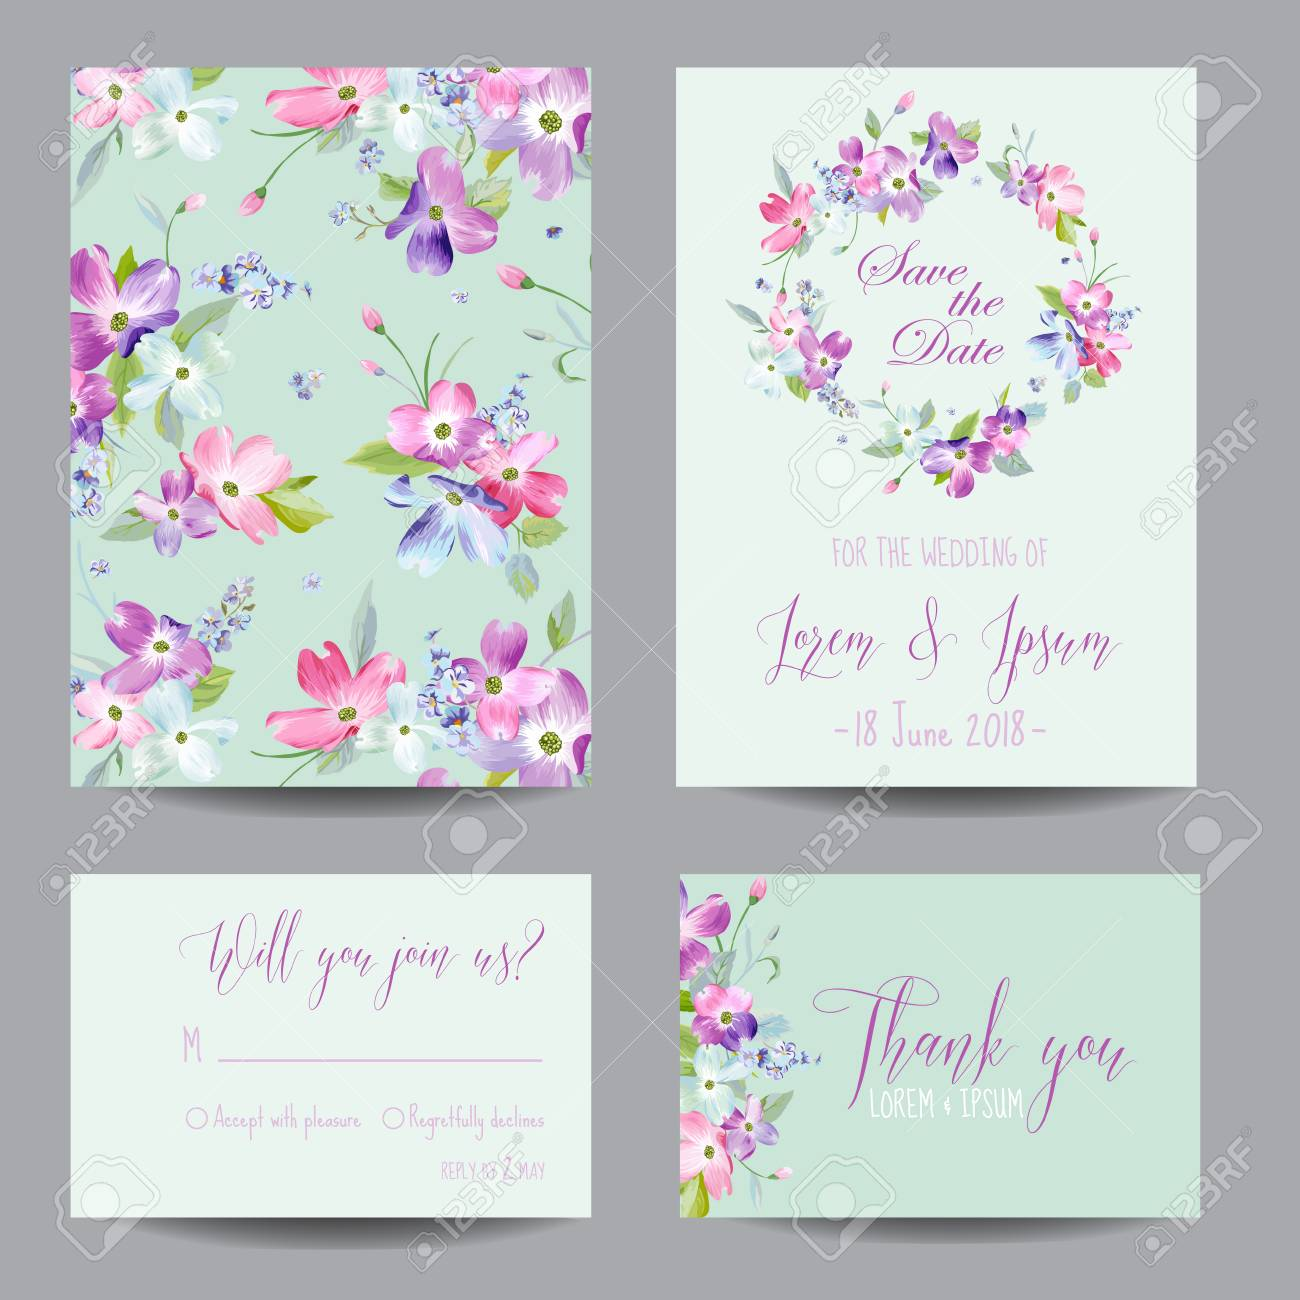 Save the date wedding invitation template with spring dogwood save the date wedding invitation template with spring dogwood flowers romantic floral greeting card set stopboris Image collections